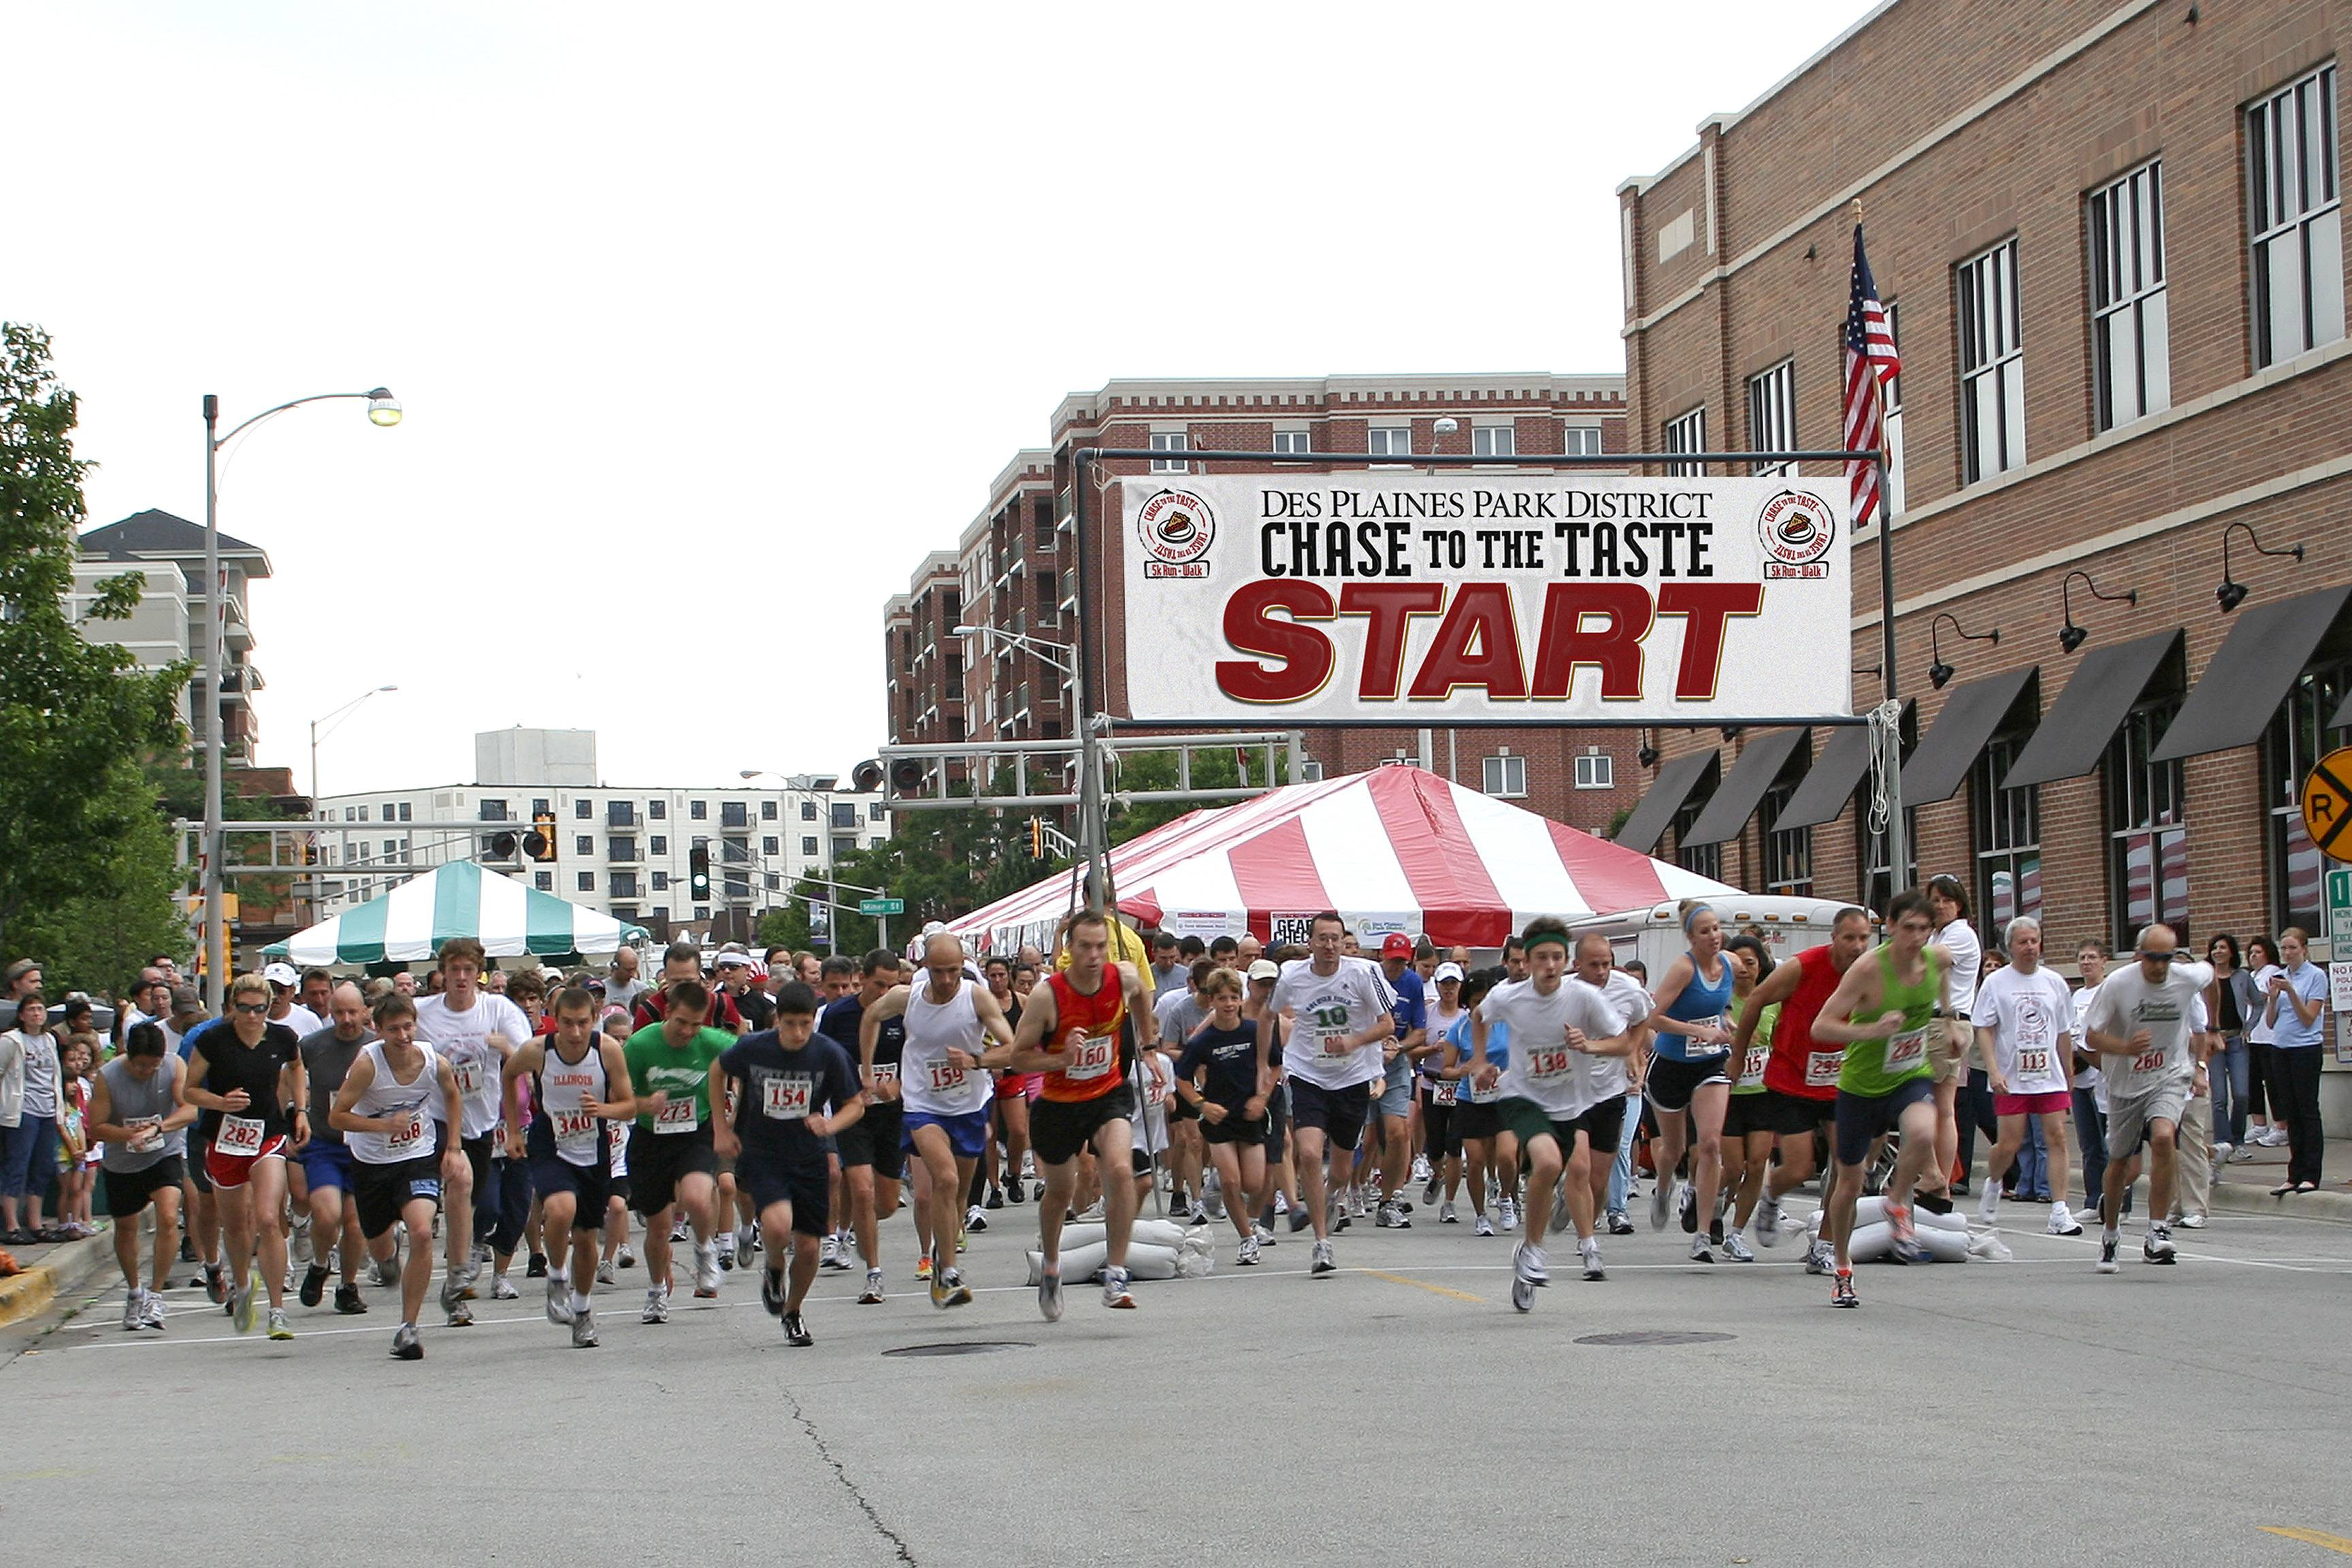 Runners take to the streets in the annual Des Plaines Park District Chase 5K run/walk.